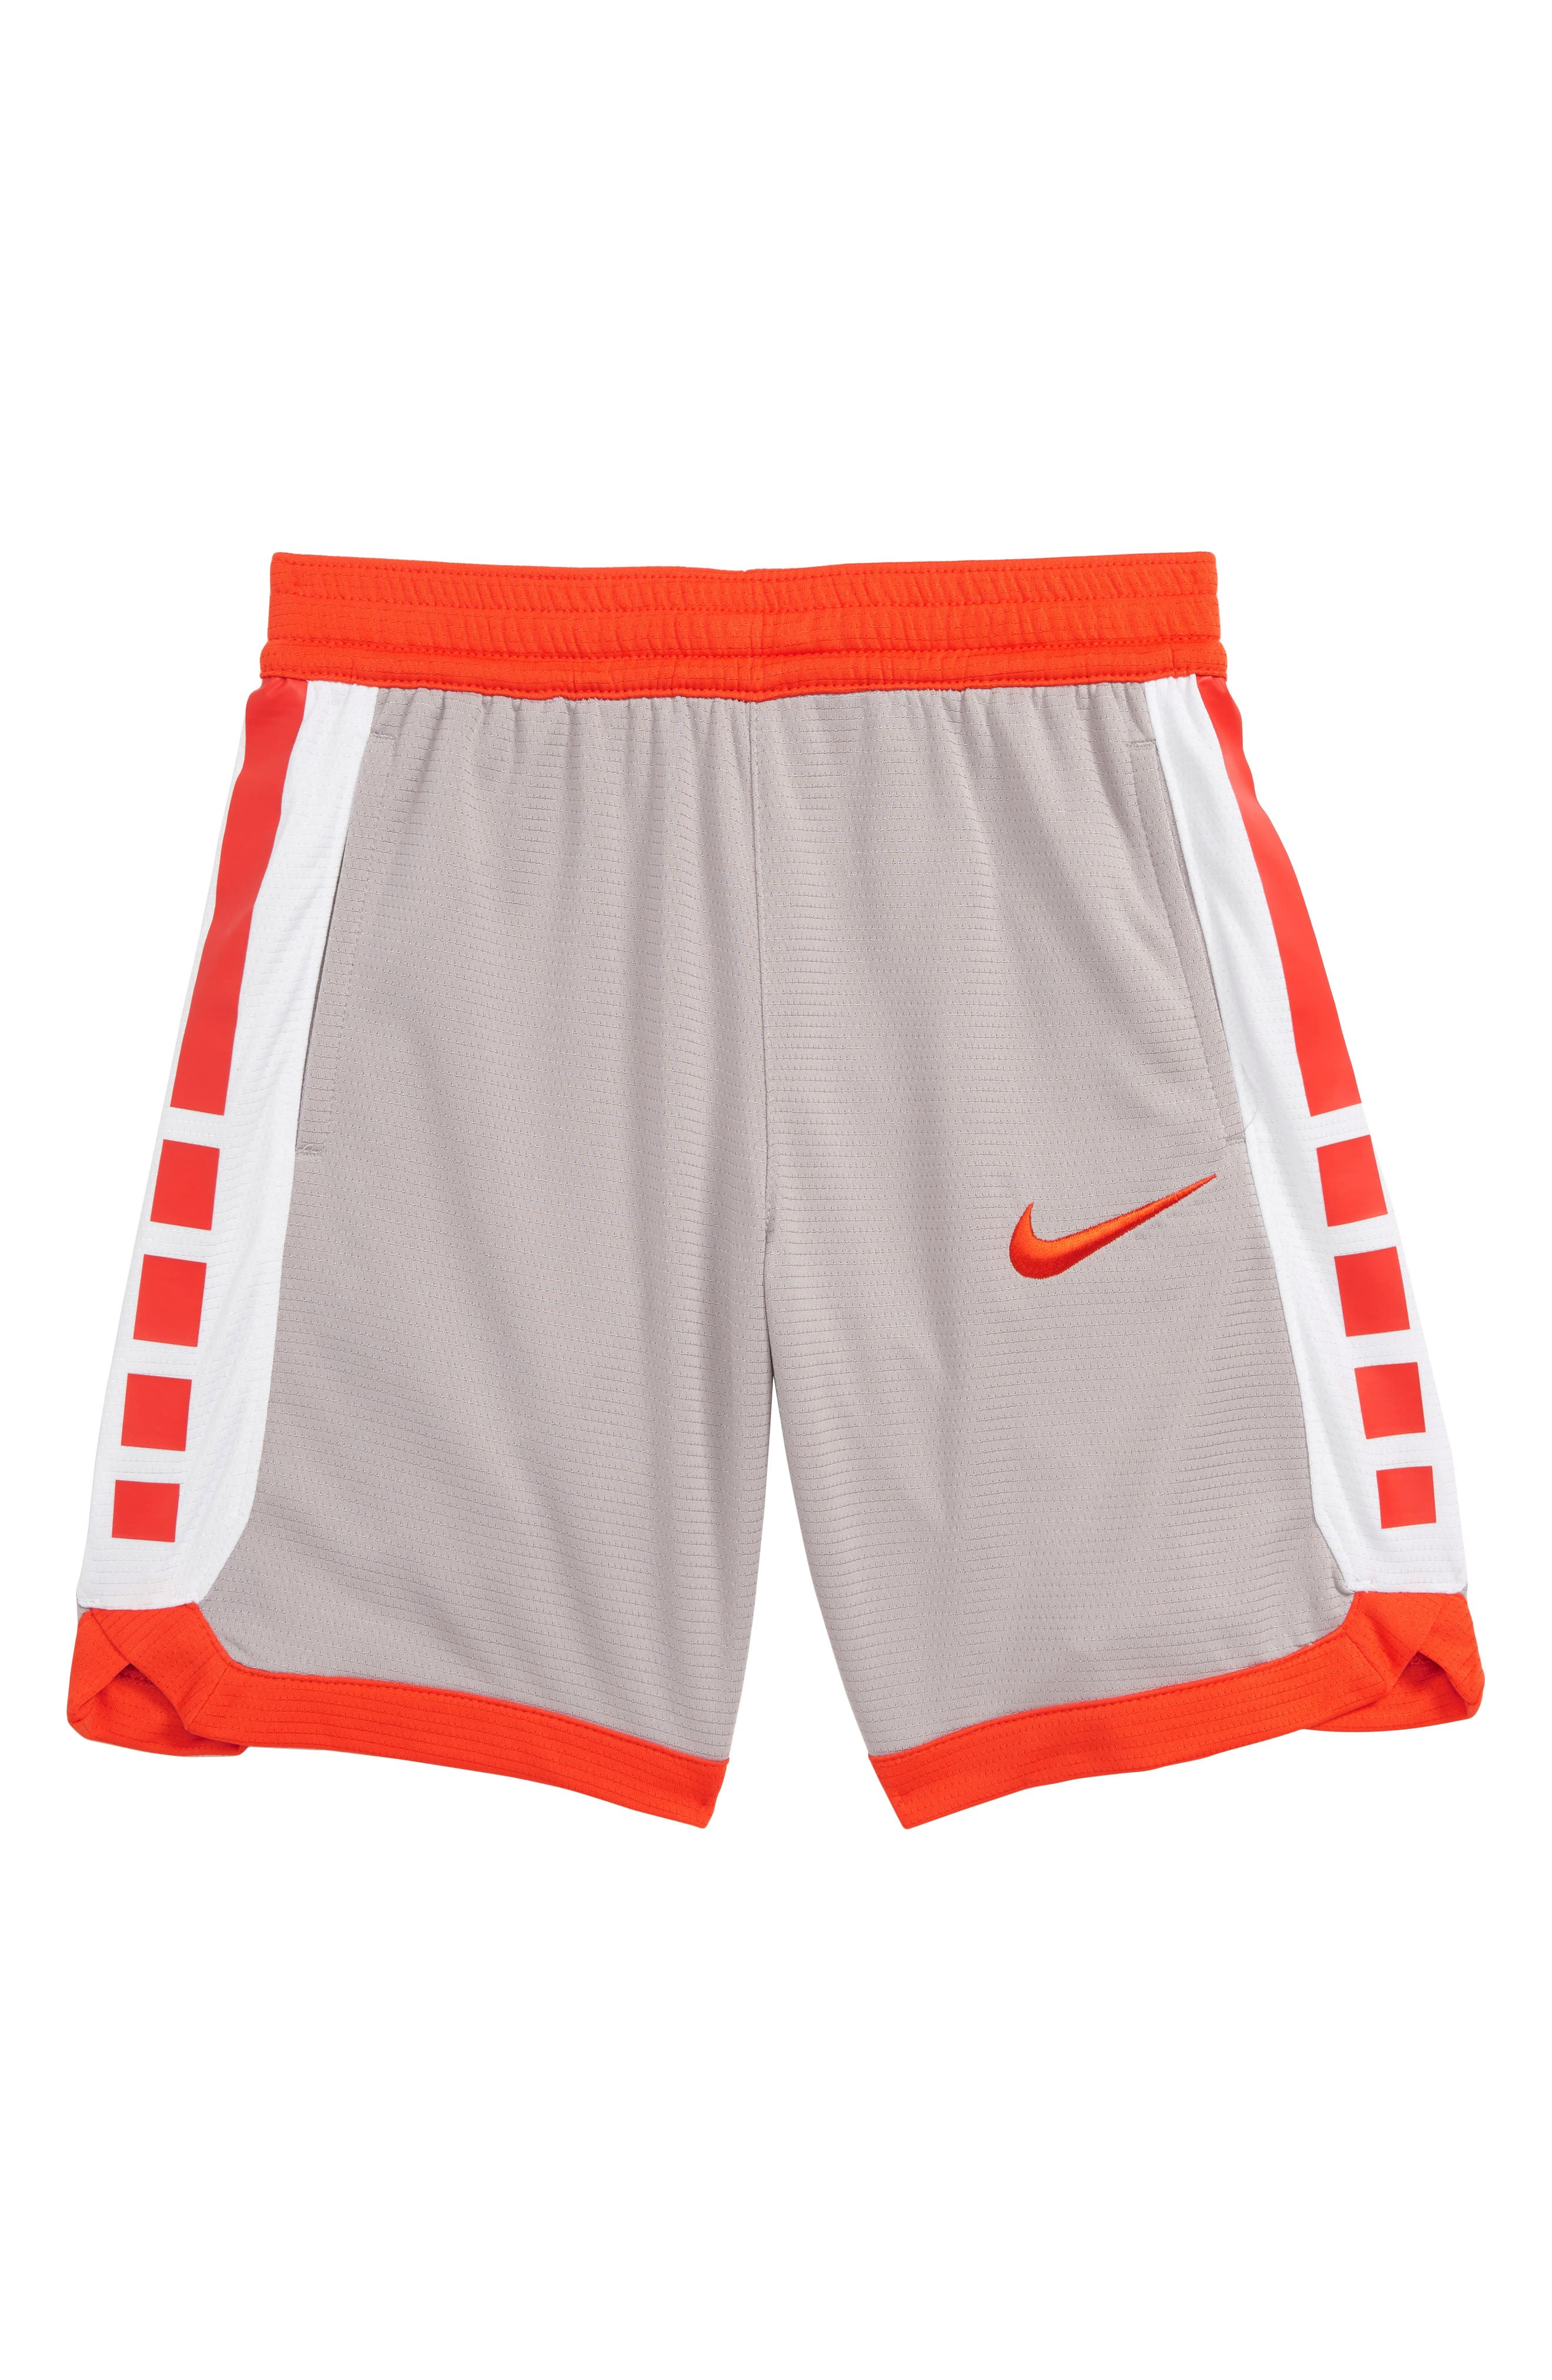 Boys Nike Dry Elite Stripe Athletic Shorts Size 6  Grey